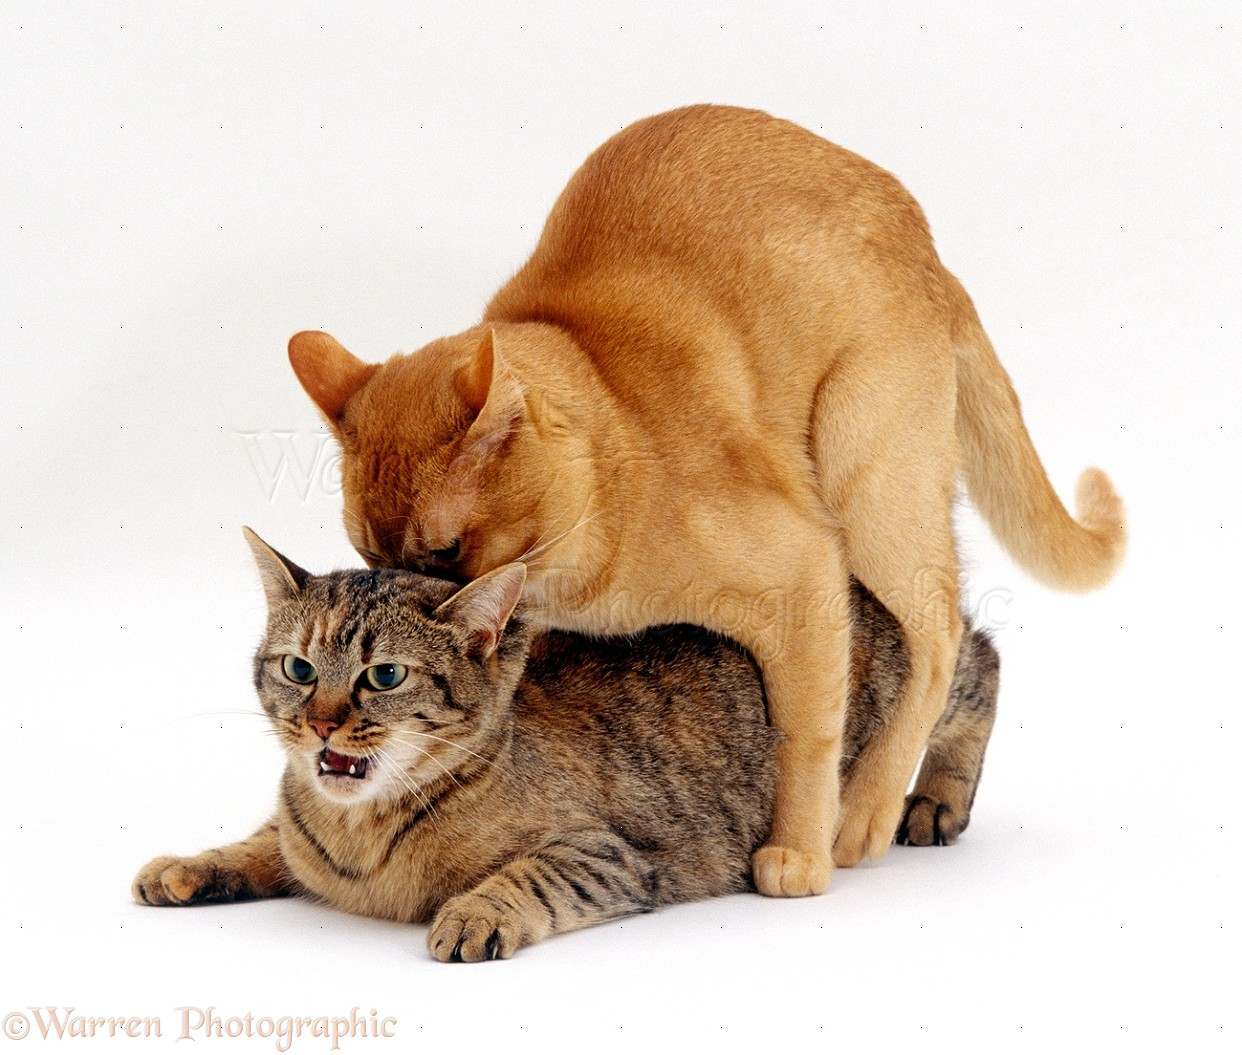 WP16730 Red Burmese male cat Ozzie mating with female tabby Dainty.